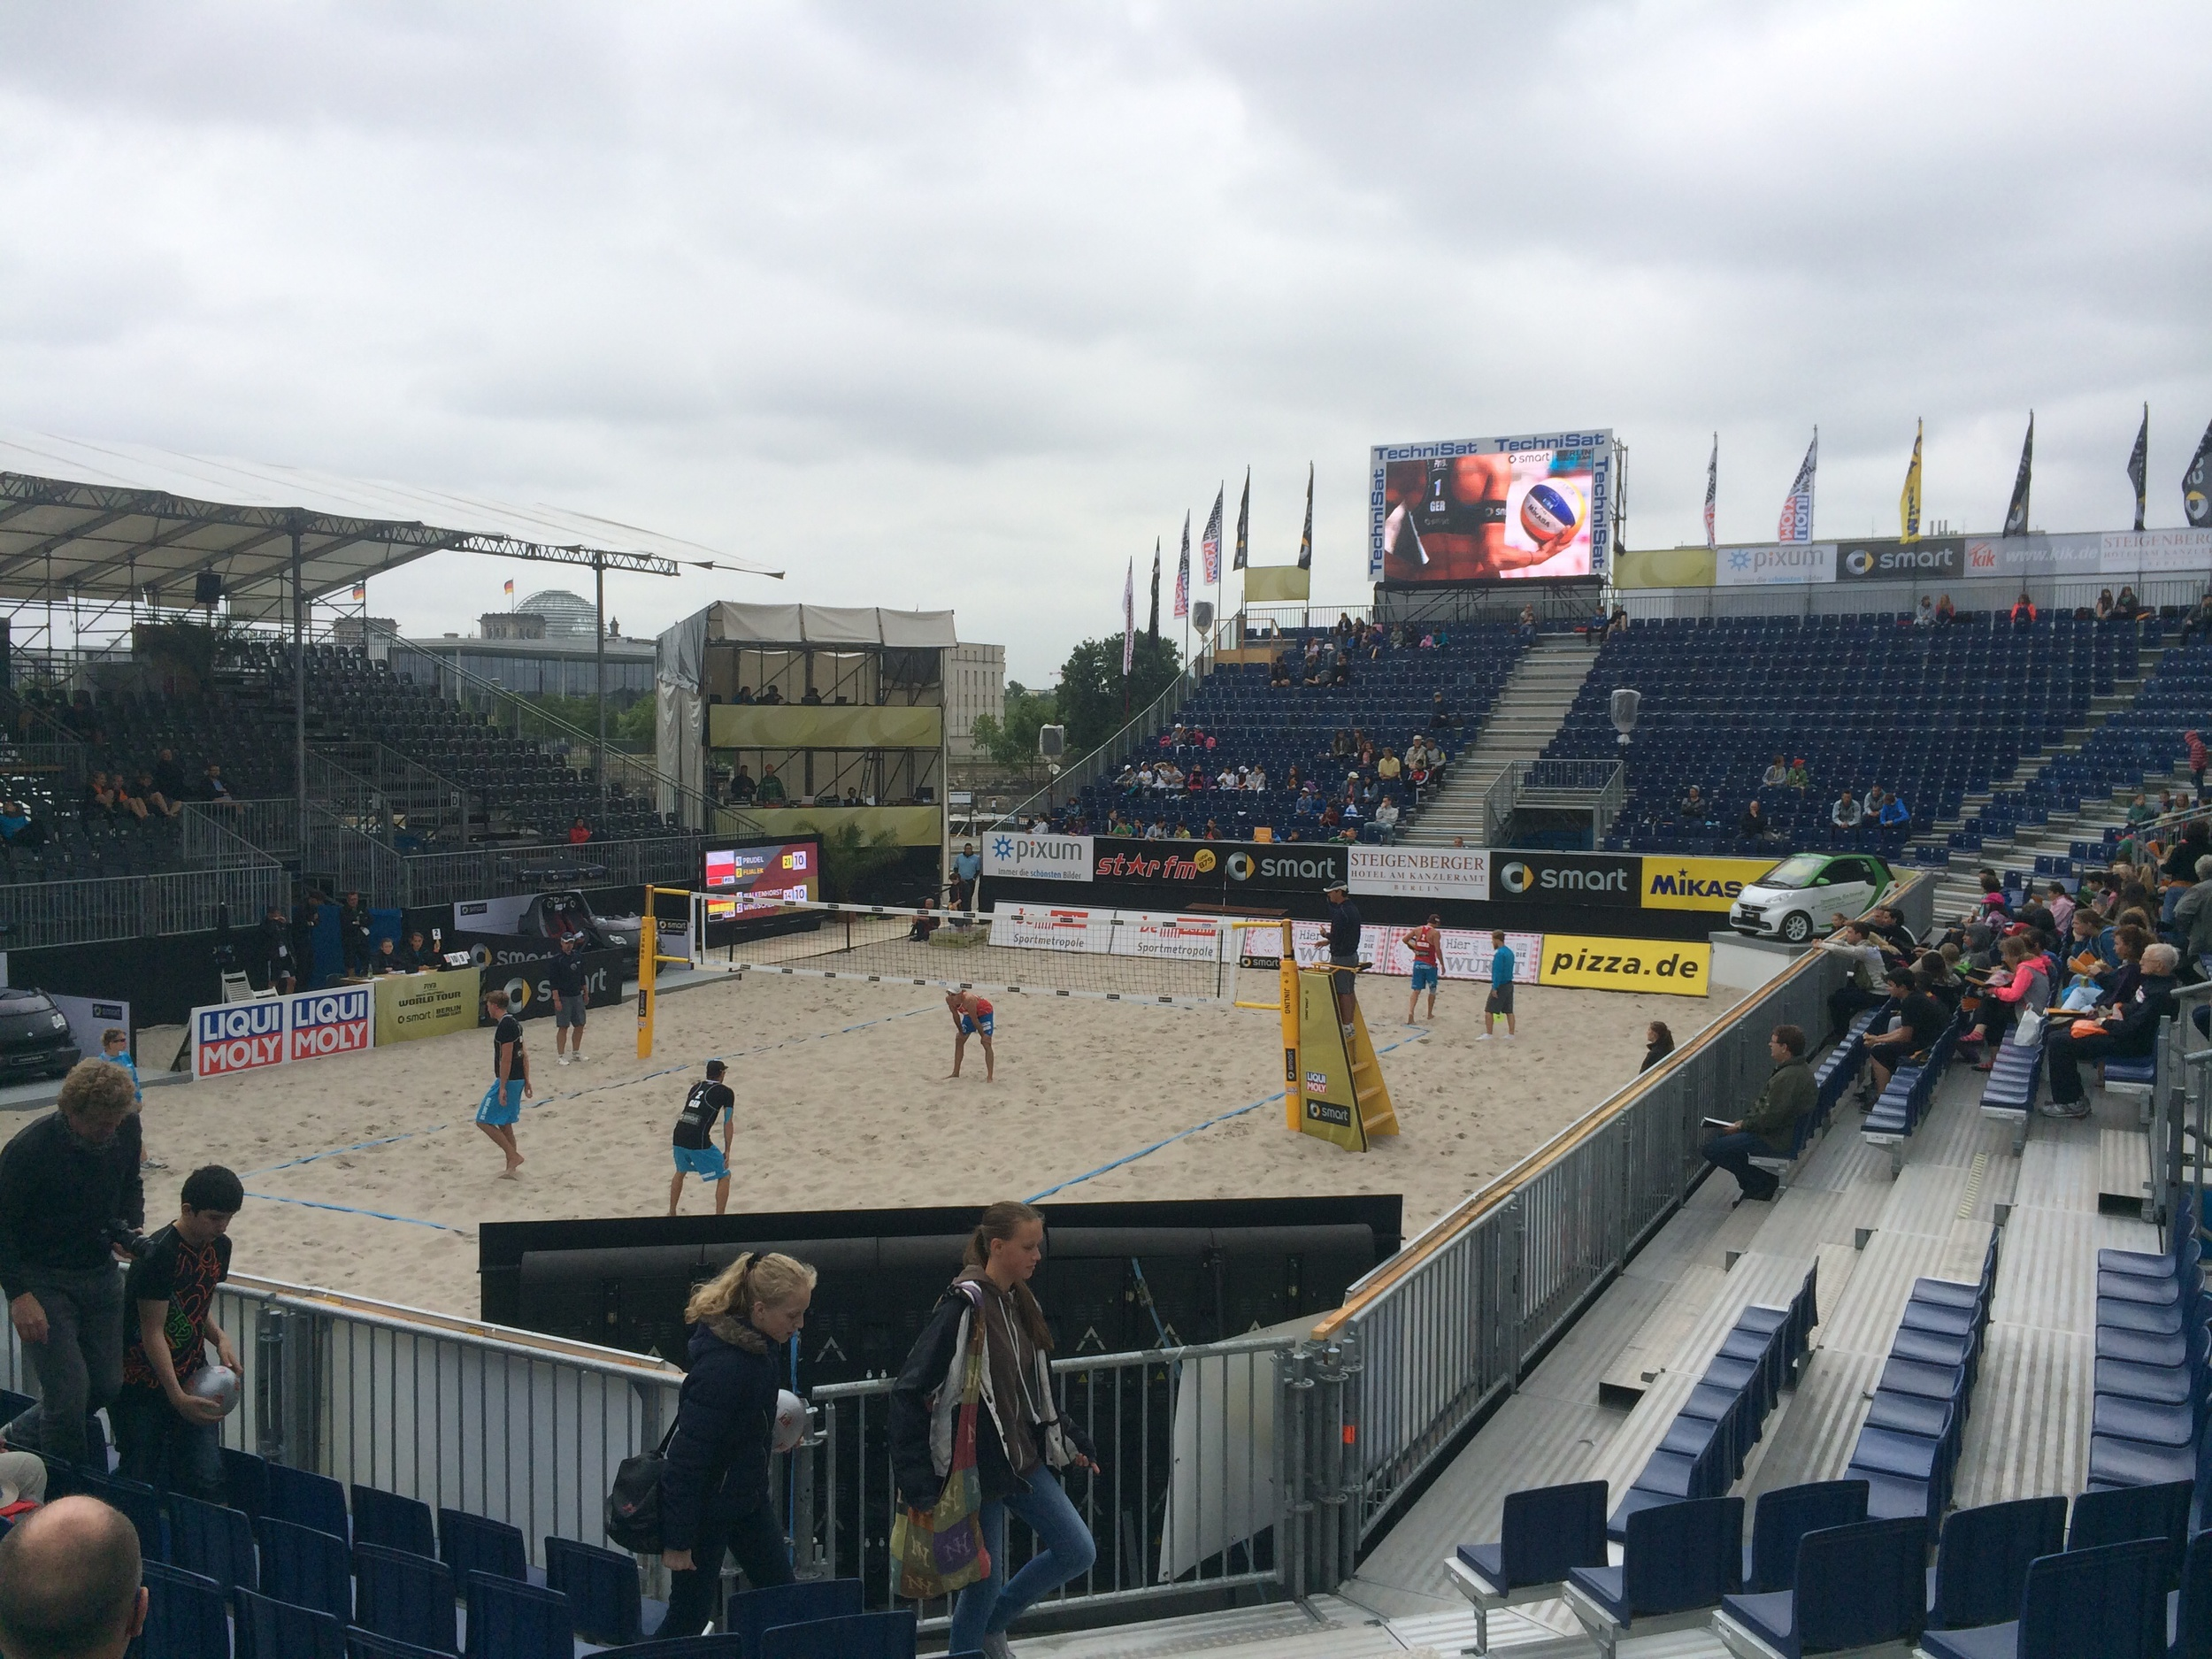 Stadium court )which we played today)